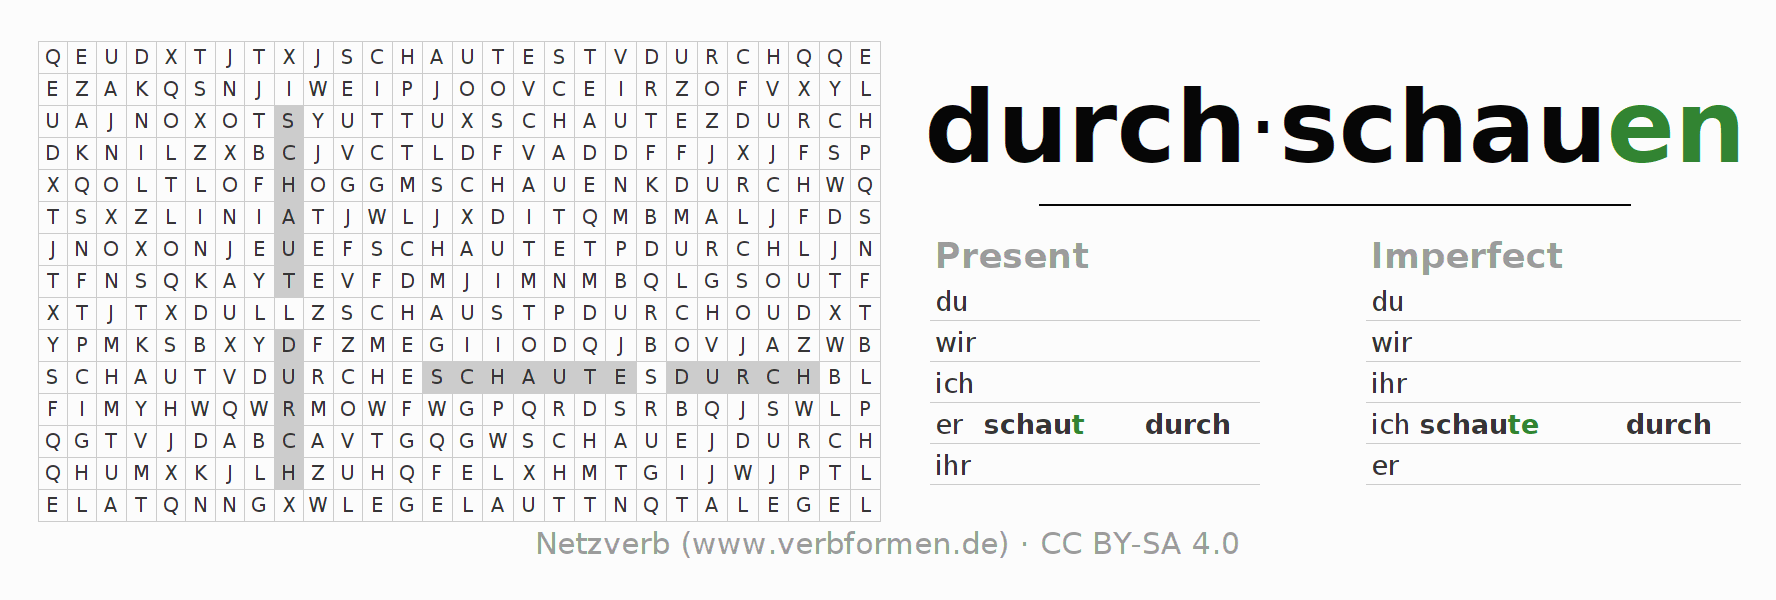 Word search puzzle for the conjugation of the verb durch-schauen